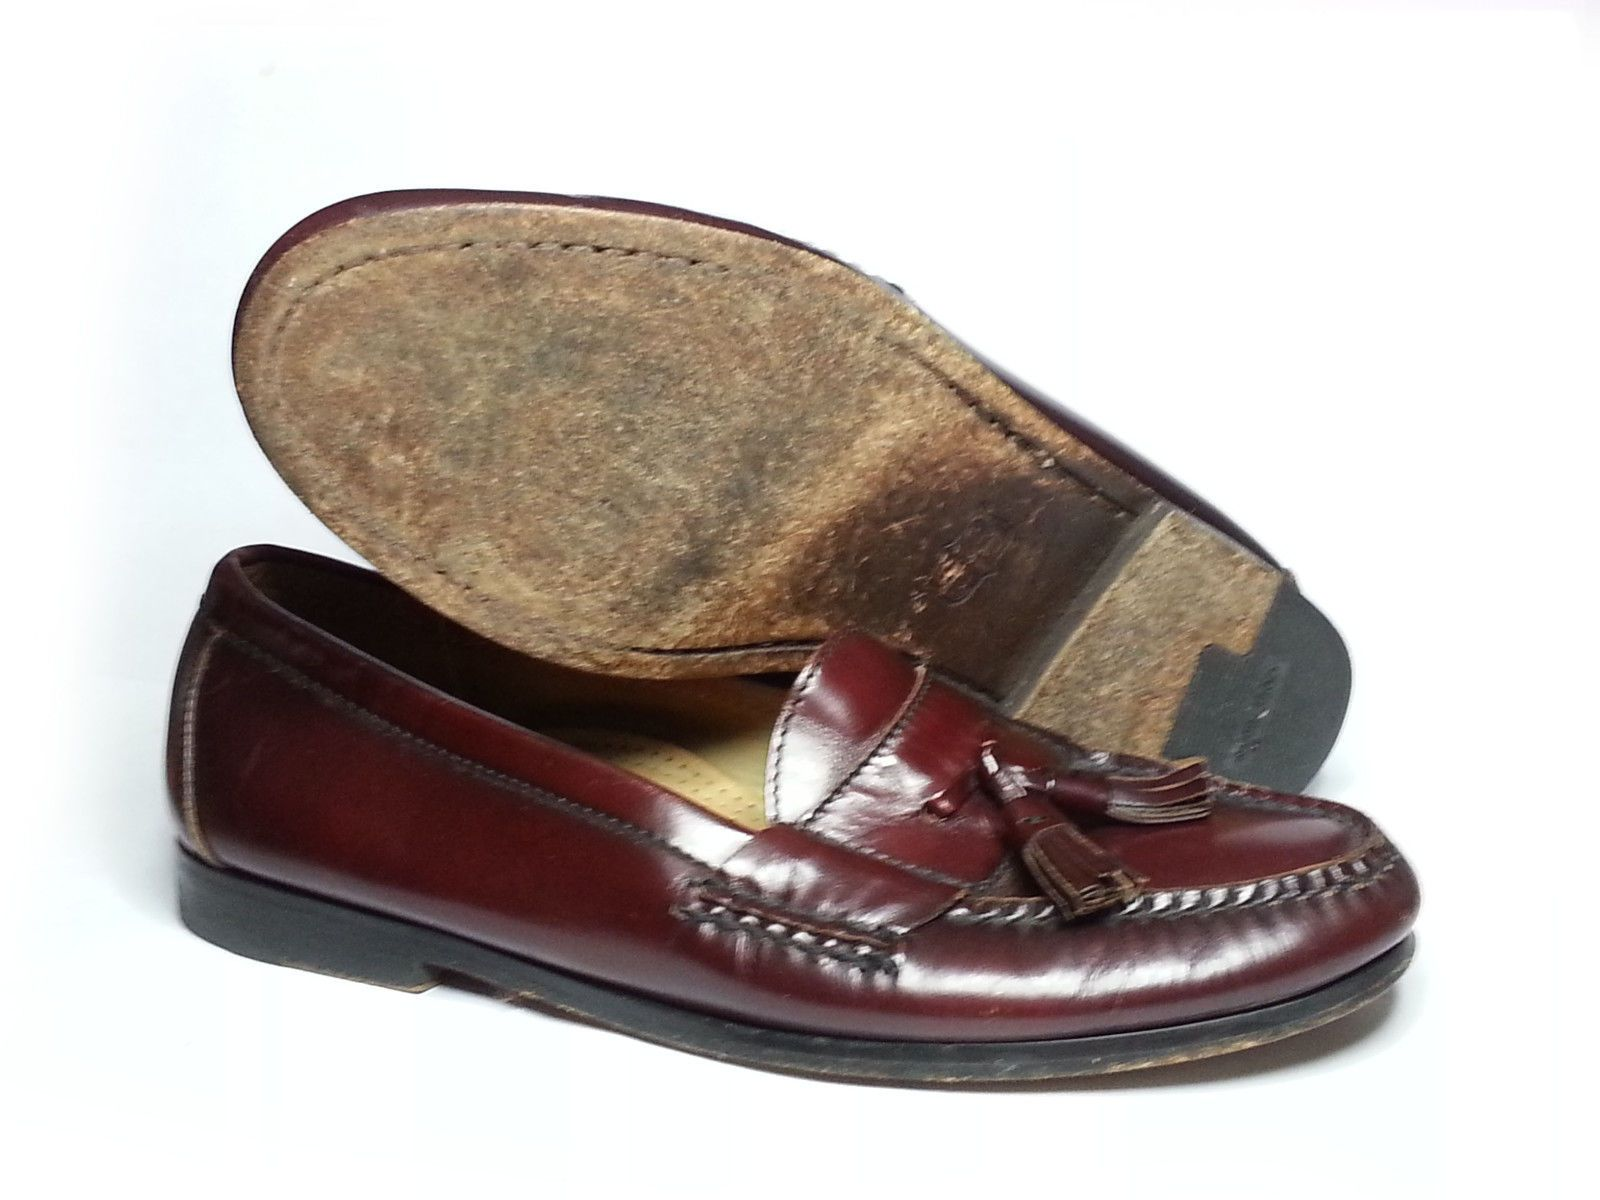 bfb17991fde  cloth shoes boots Cole Haan Pinch Tasseled City Moccasins loafers  Brown-Burgundy leather Size